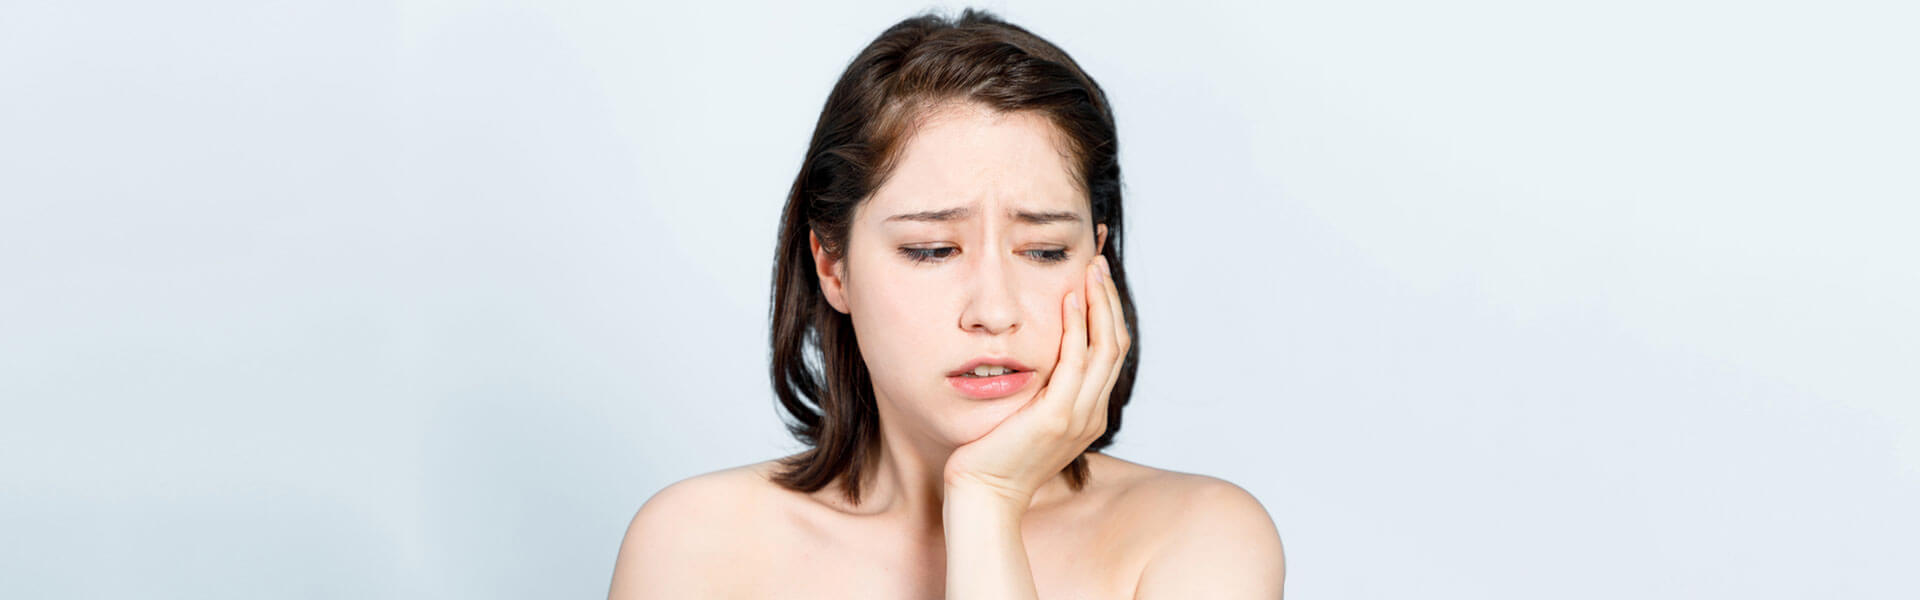 Tmj Discomfort Checkup From A Dentist In Suffern